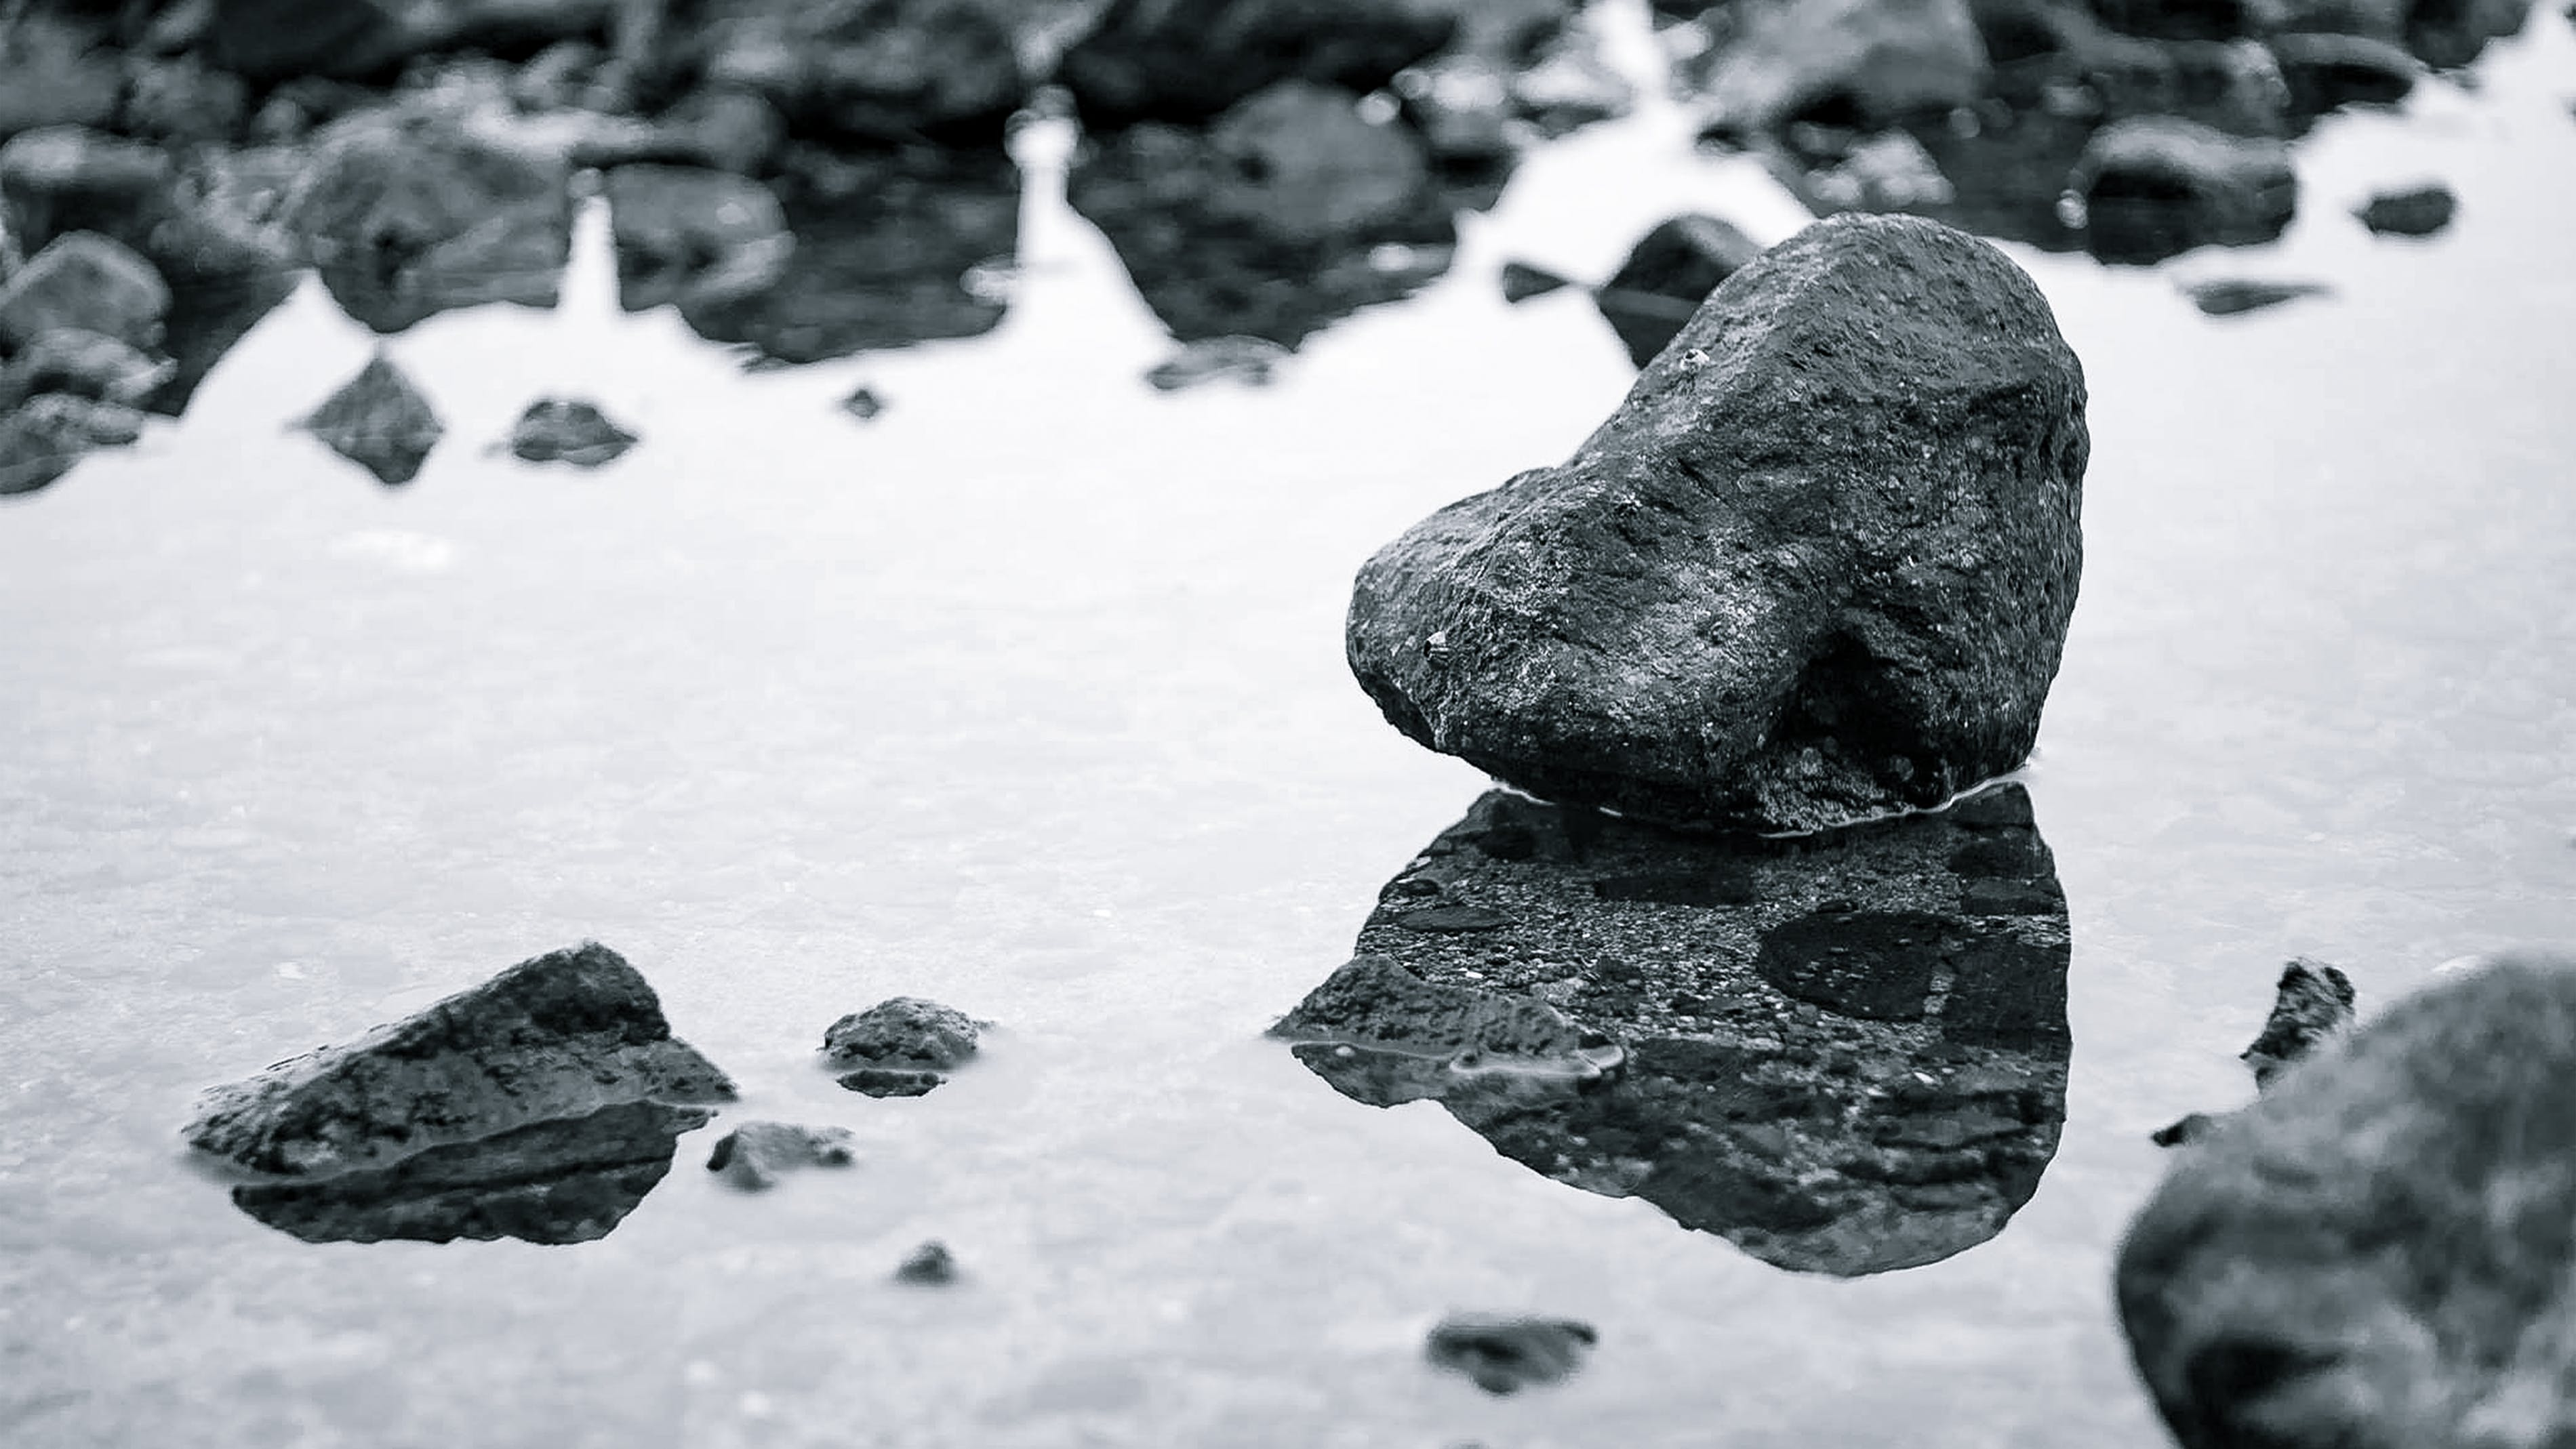 Free stock photo of beach, black and white, reflection, rock